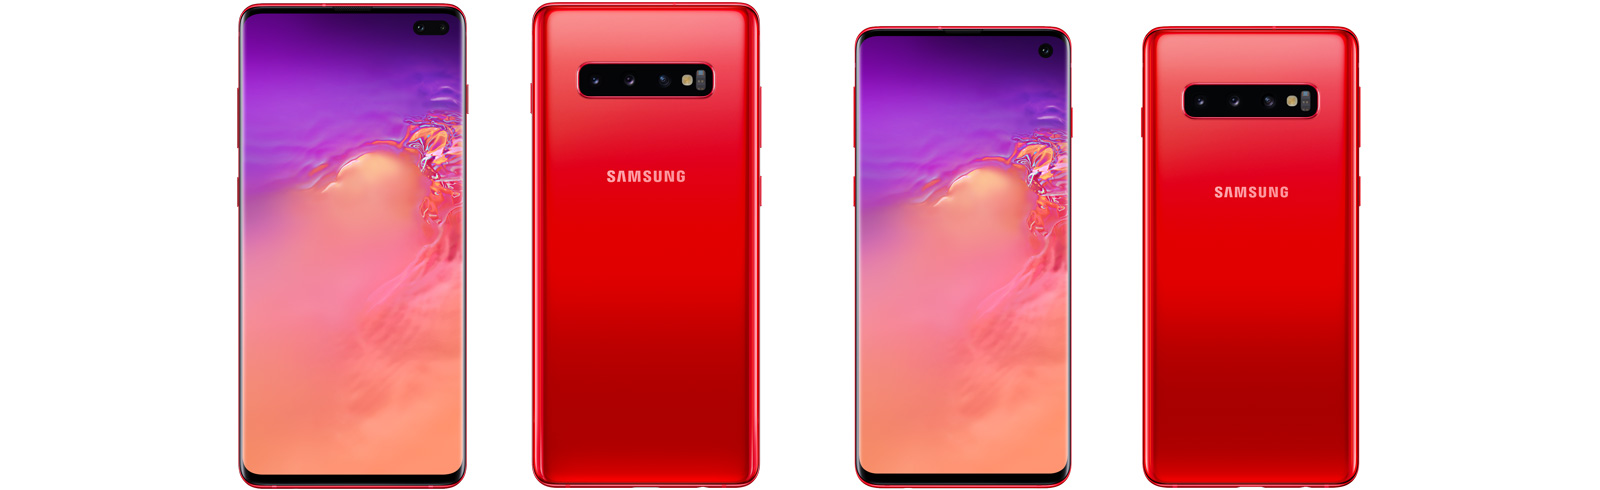 Samsung launches Galaxy S10 and Galaxy S10+ in Cardinal Red